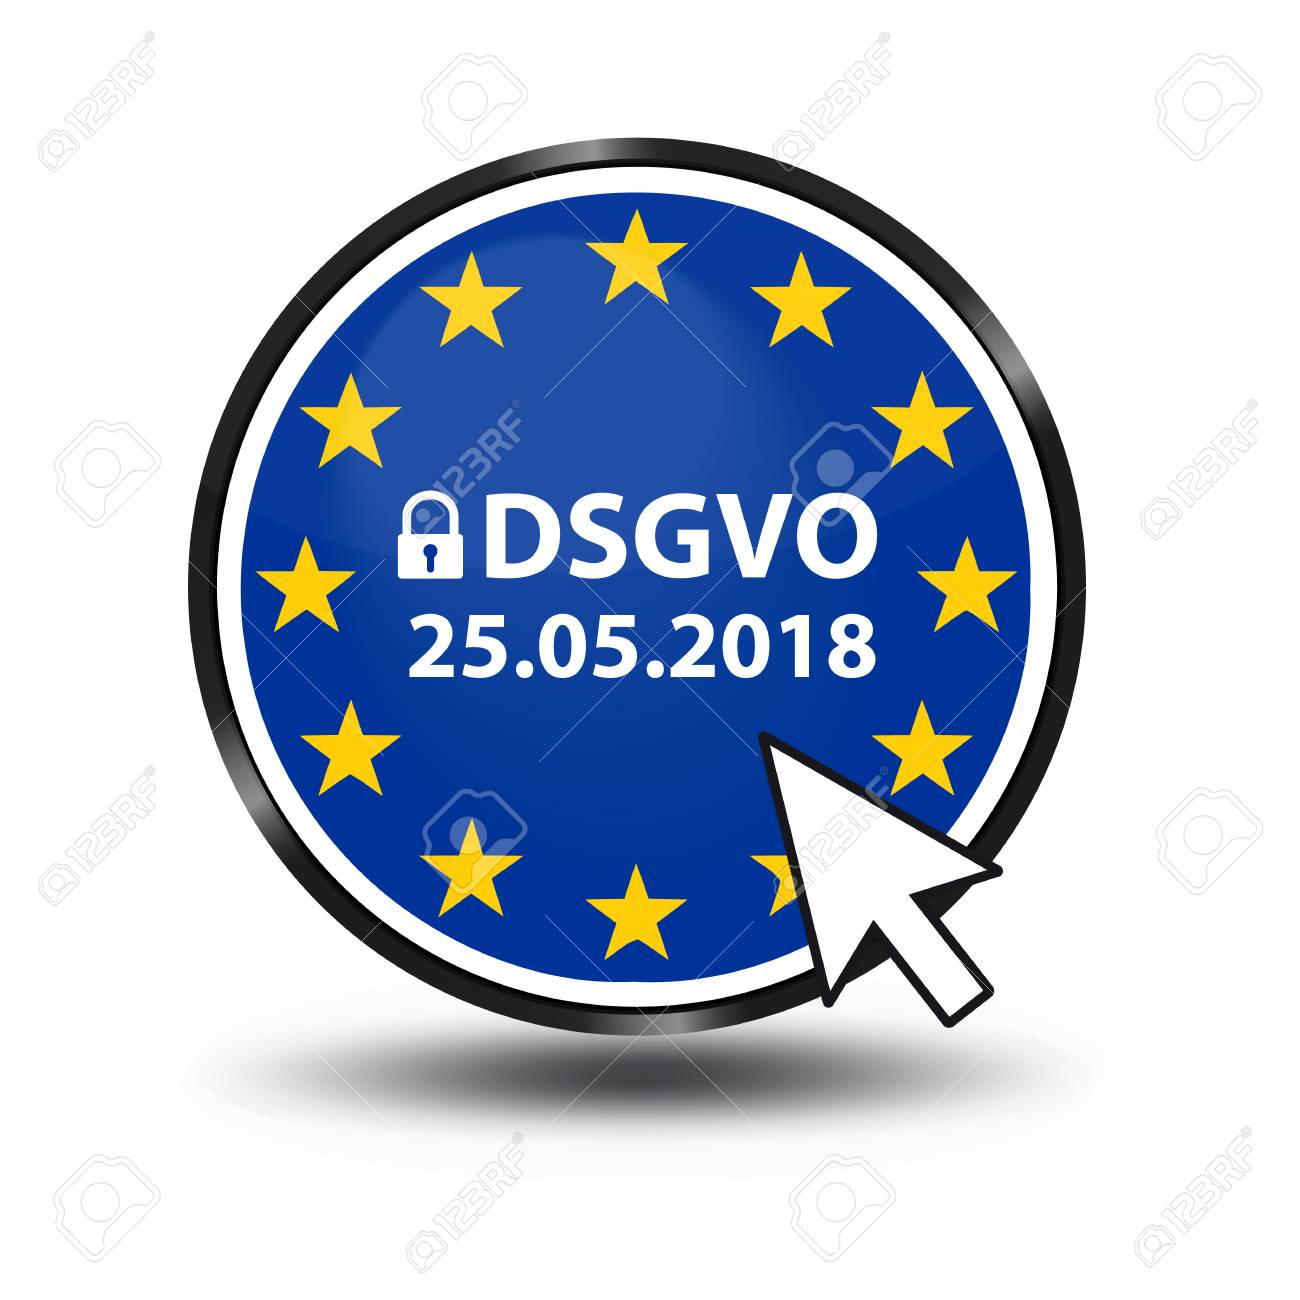 General Data Protection Regulation German Mutation: Datenschutz Grundverordnung (DSGVO) - Web Button With Security Lock And Mouse Arrow - 96279555